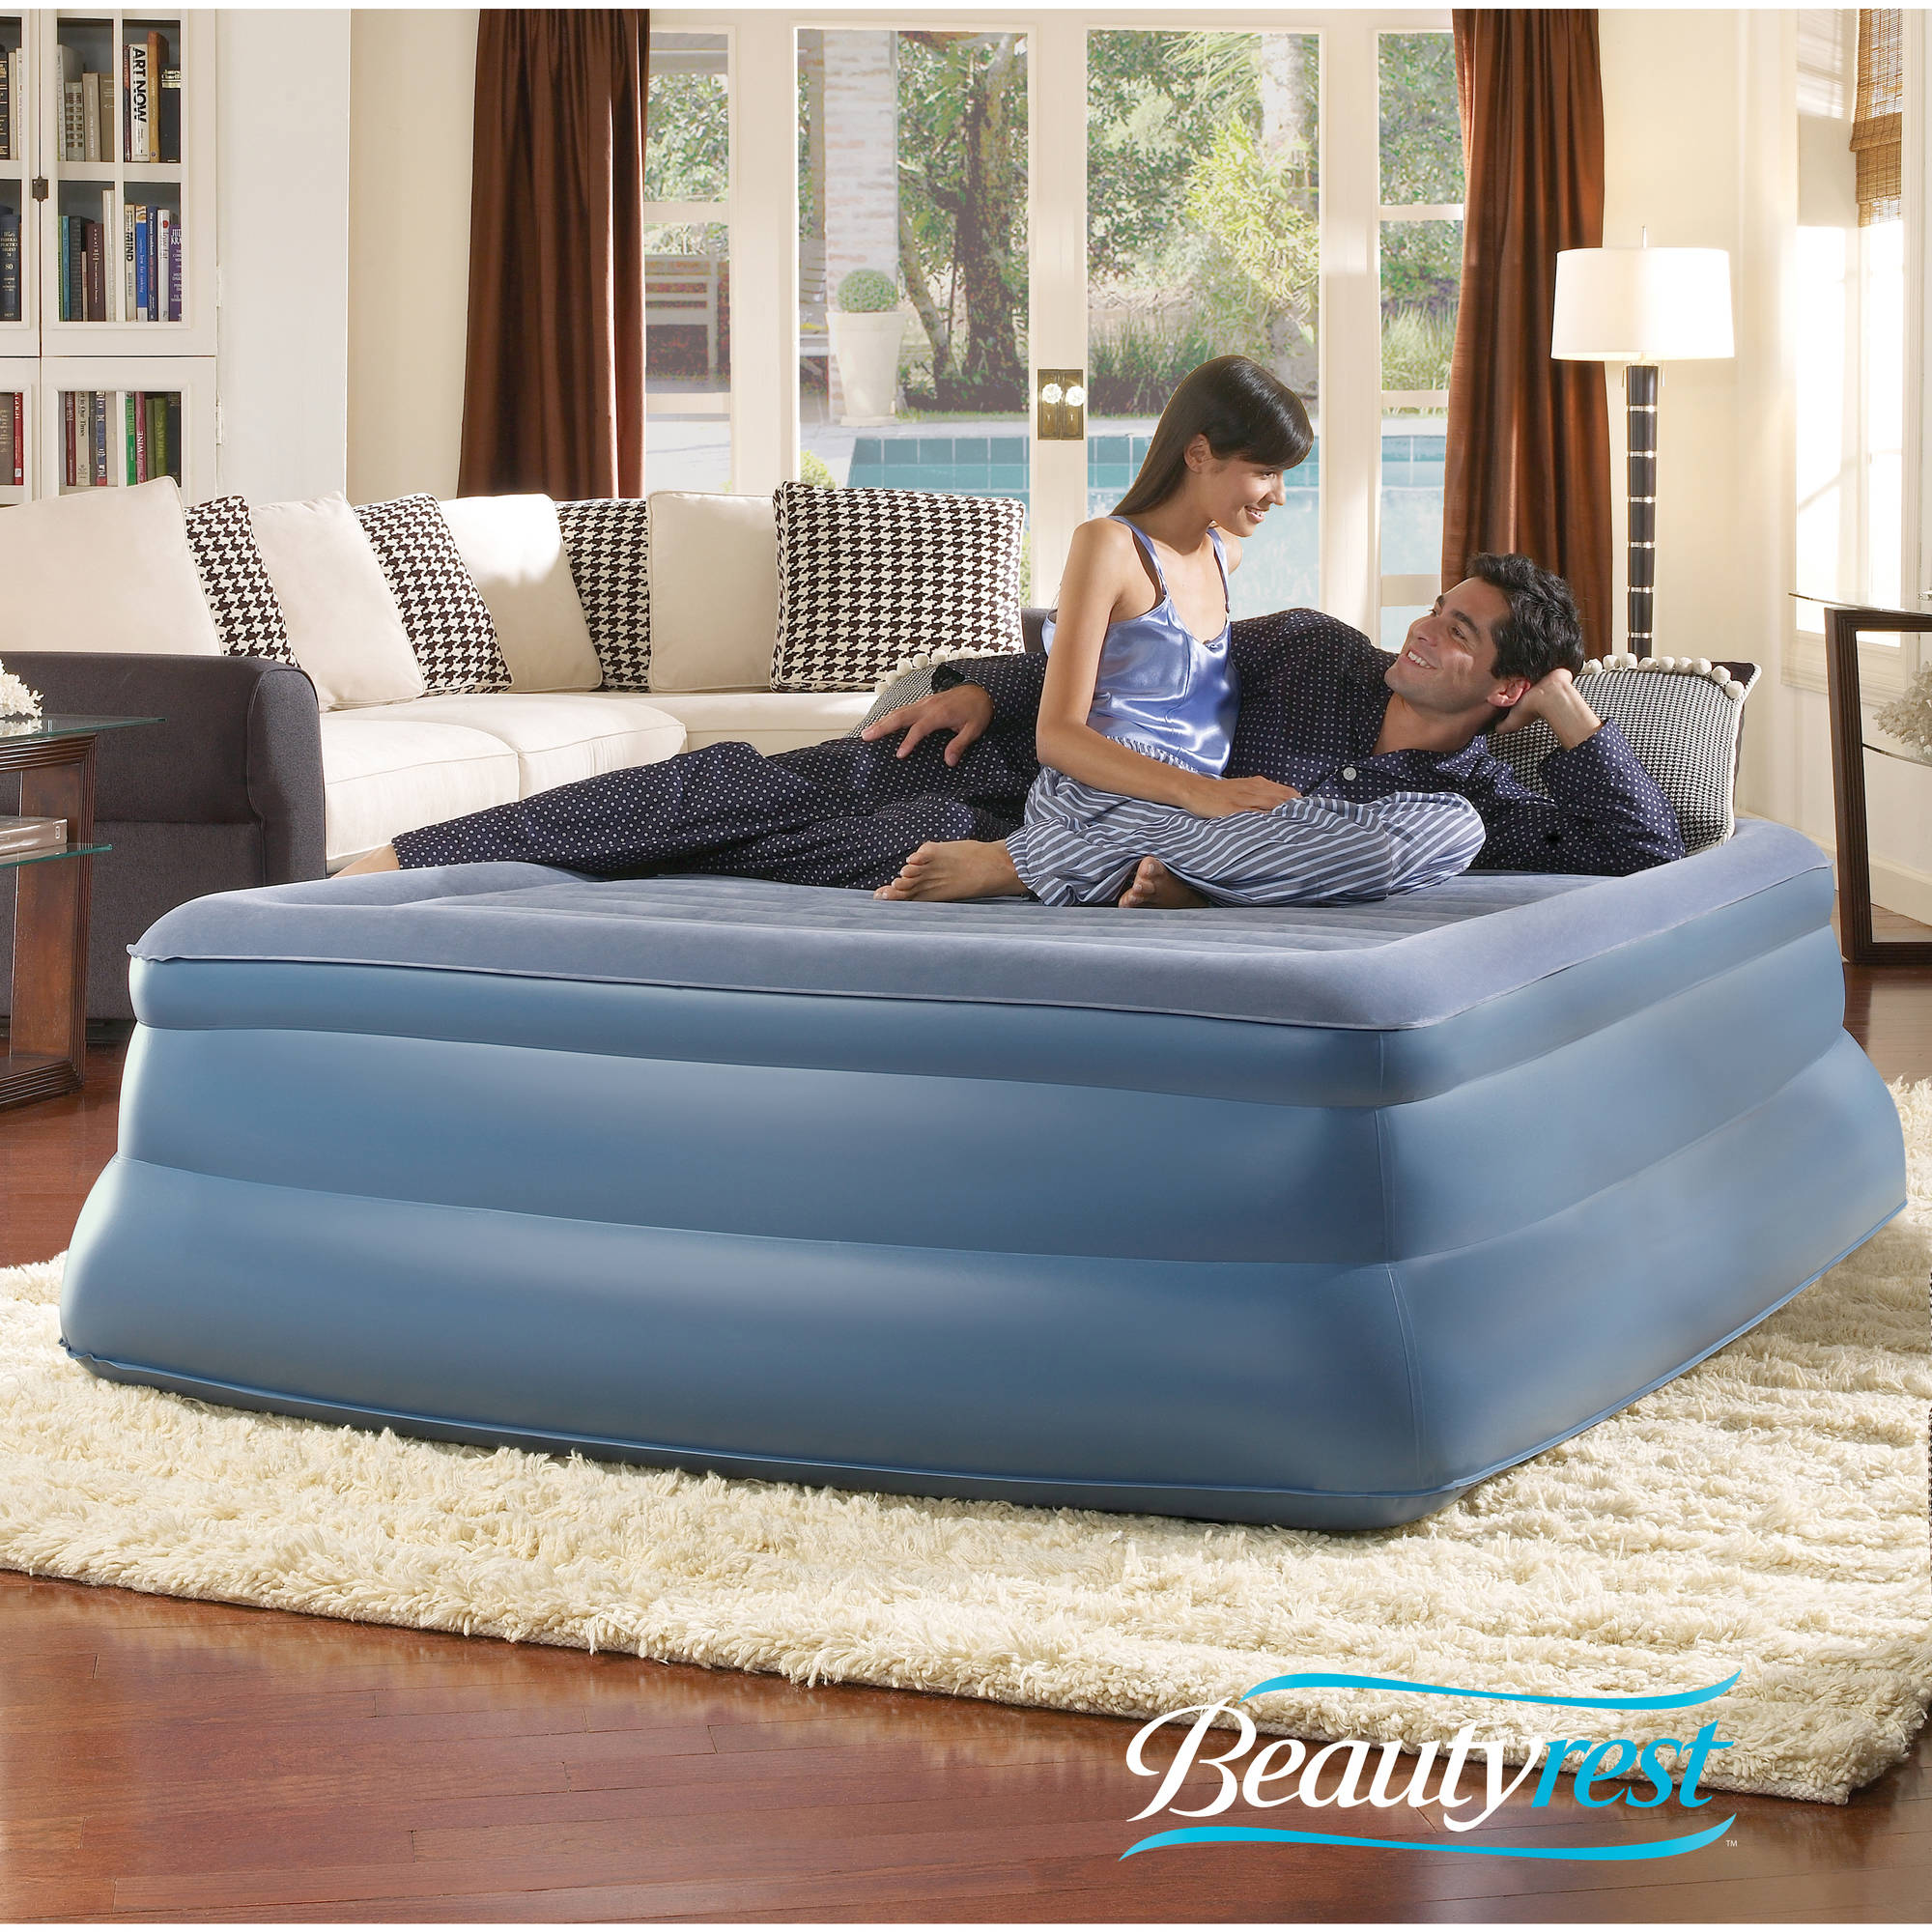 Simmons Beautyrest Queen Sky Rise Raised Pillowtop Air Bed Mattress with Pump